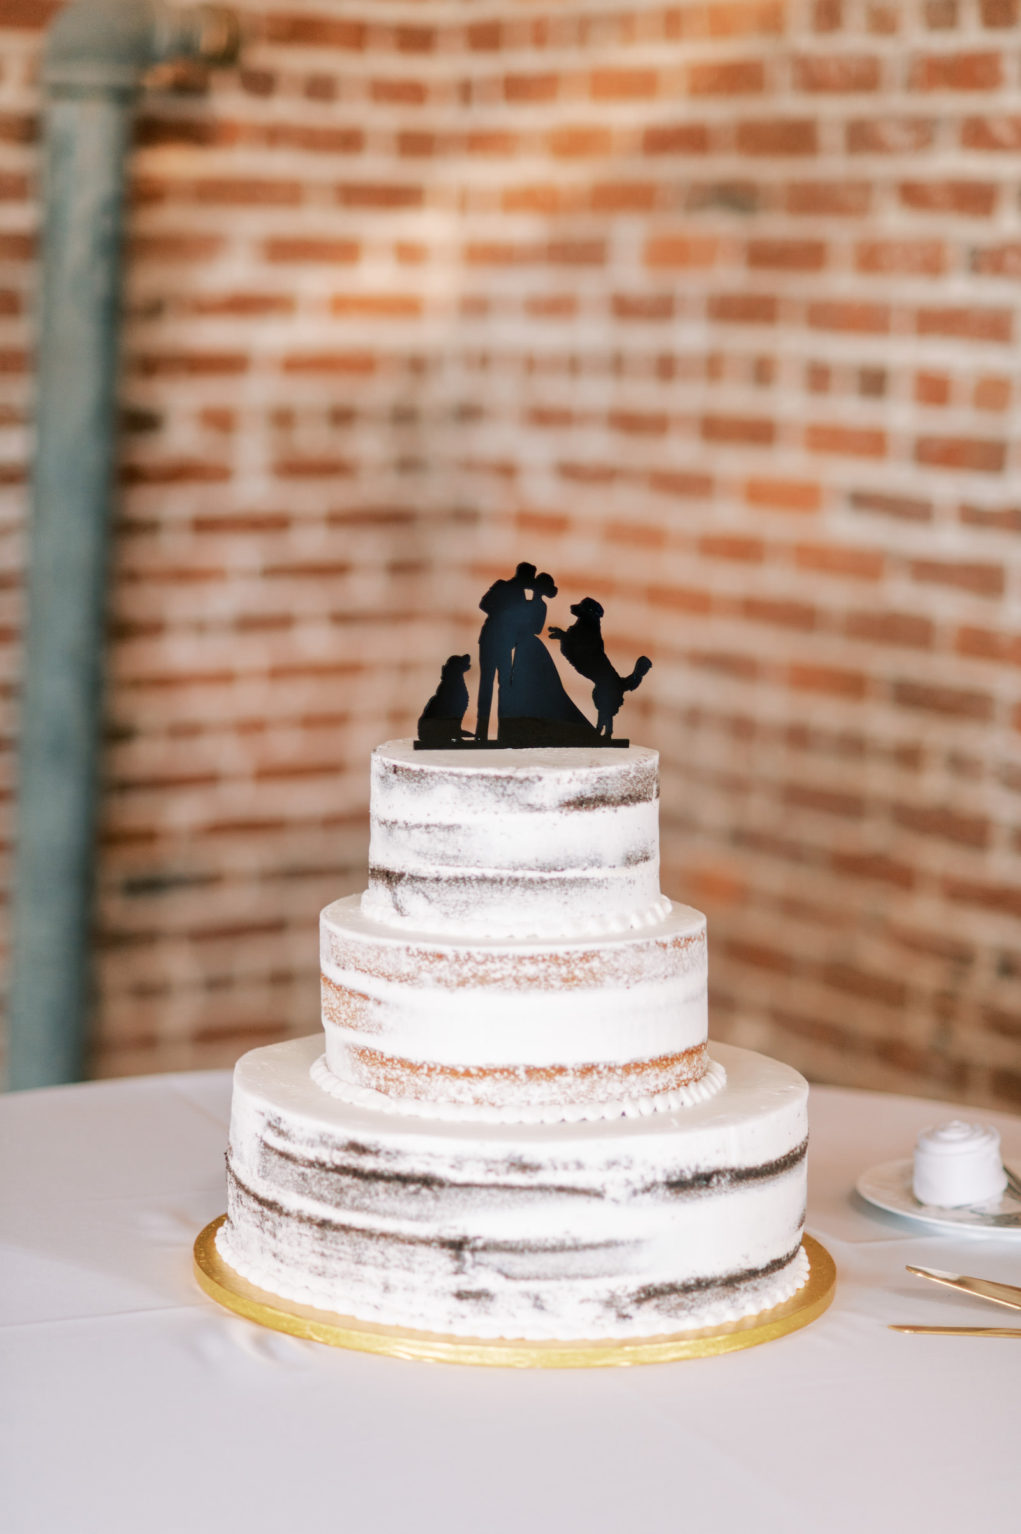 Three Tier Simple Semi Naked Wedding Cake with Black Silhouette Bride, Groom and Golden Retrievers Cake Topper | Tampa Bay Wedding Photographer Kera Photography